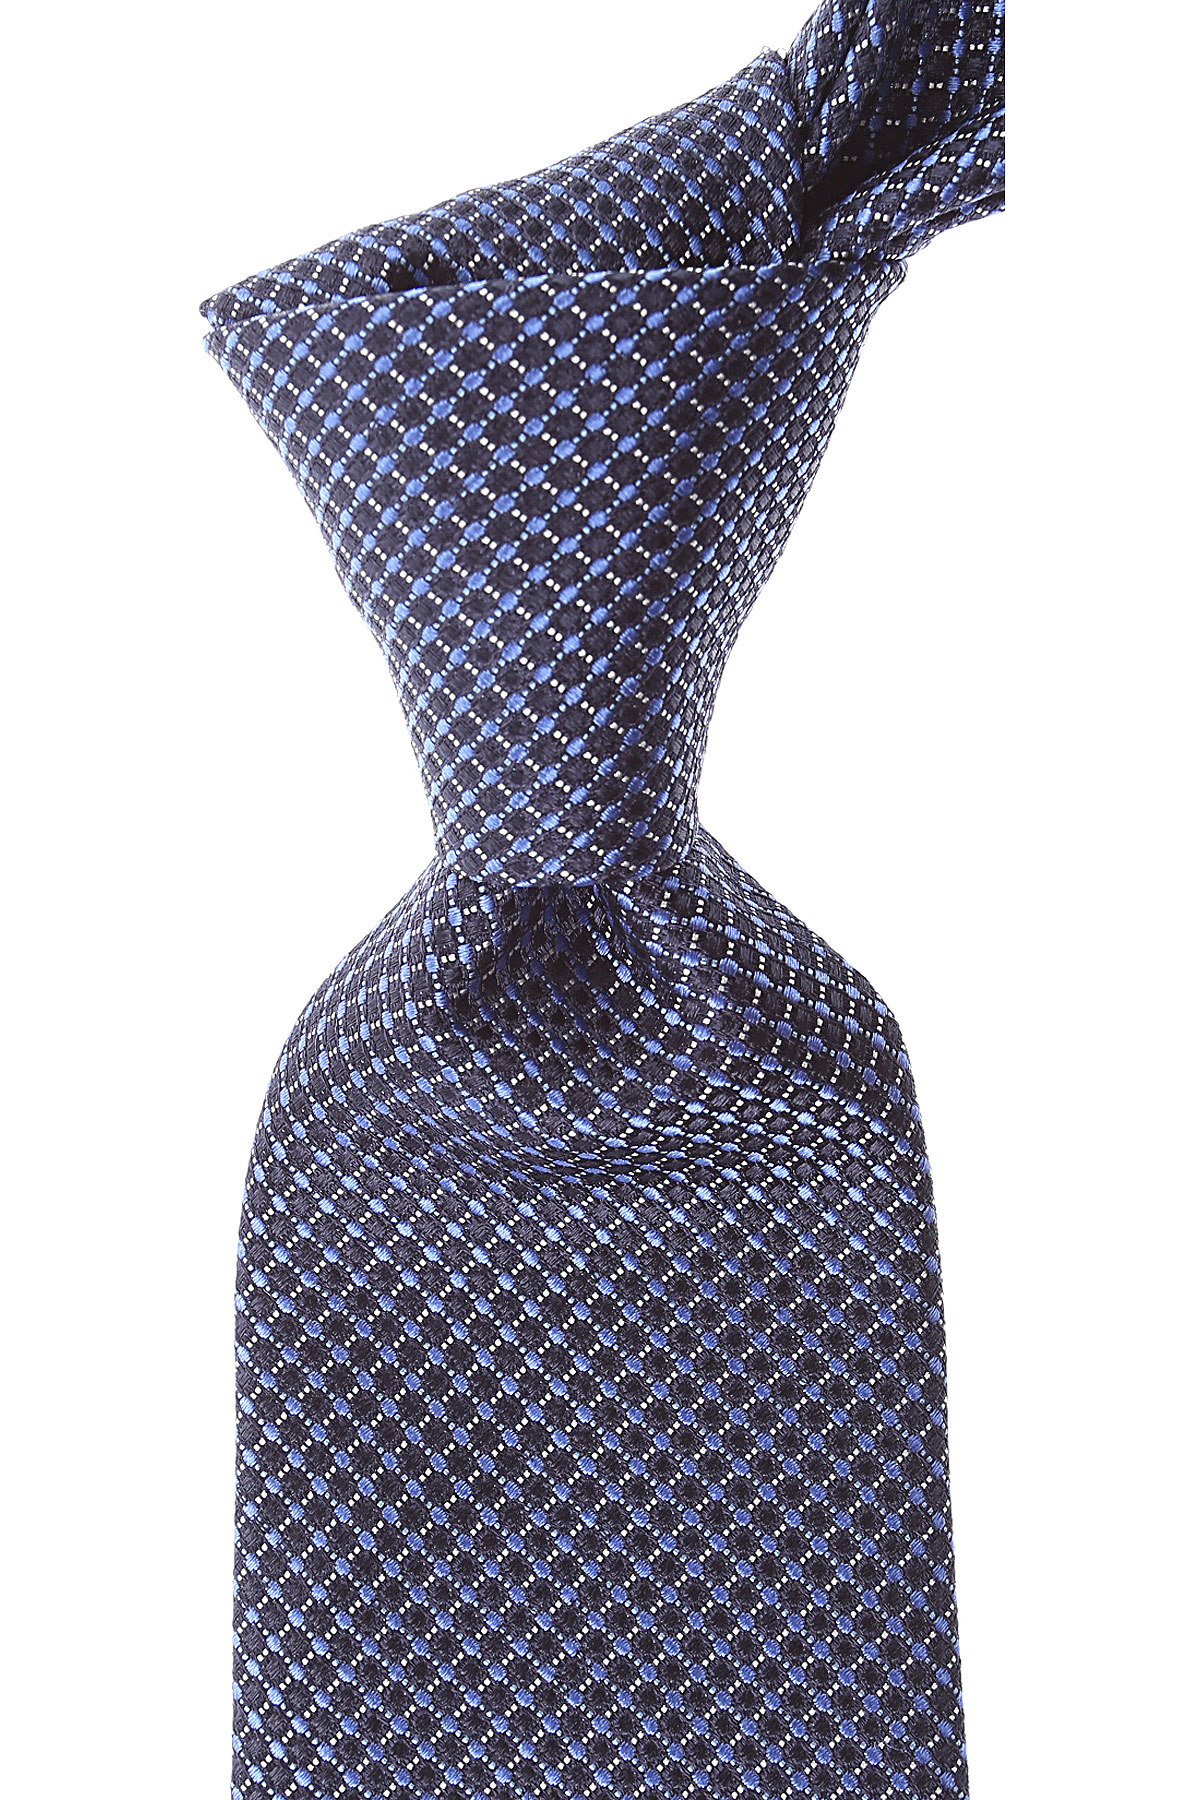 Canali Ties On Sale, Blue Navy, Silk, 2019